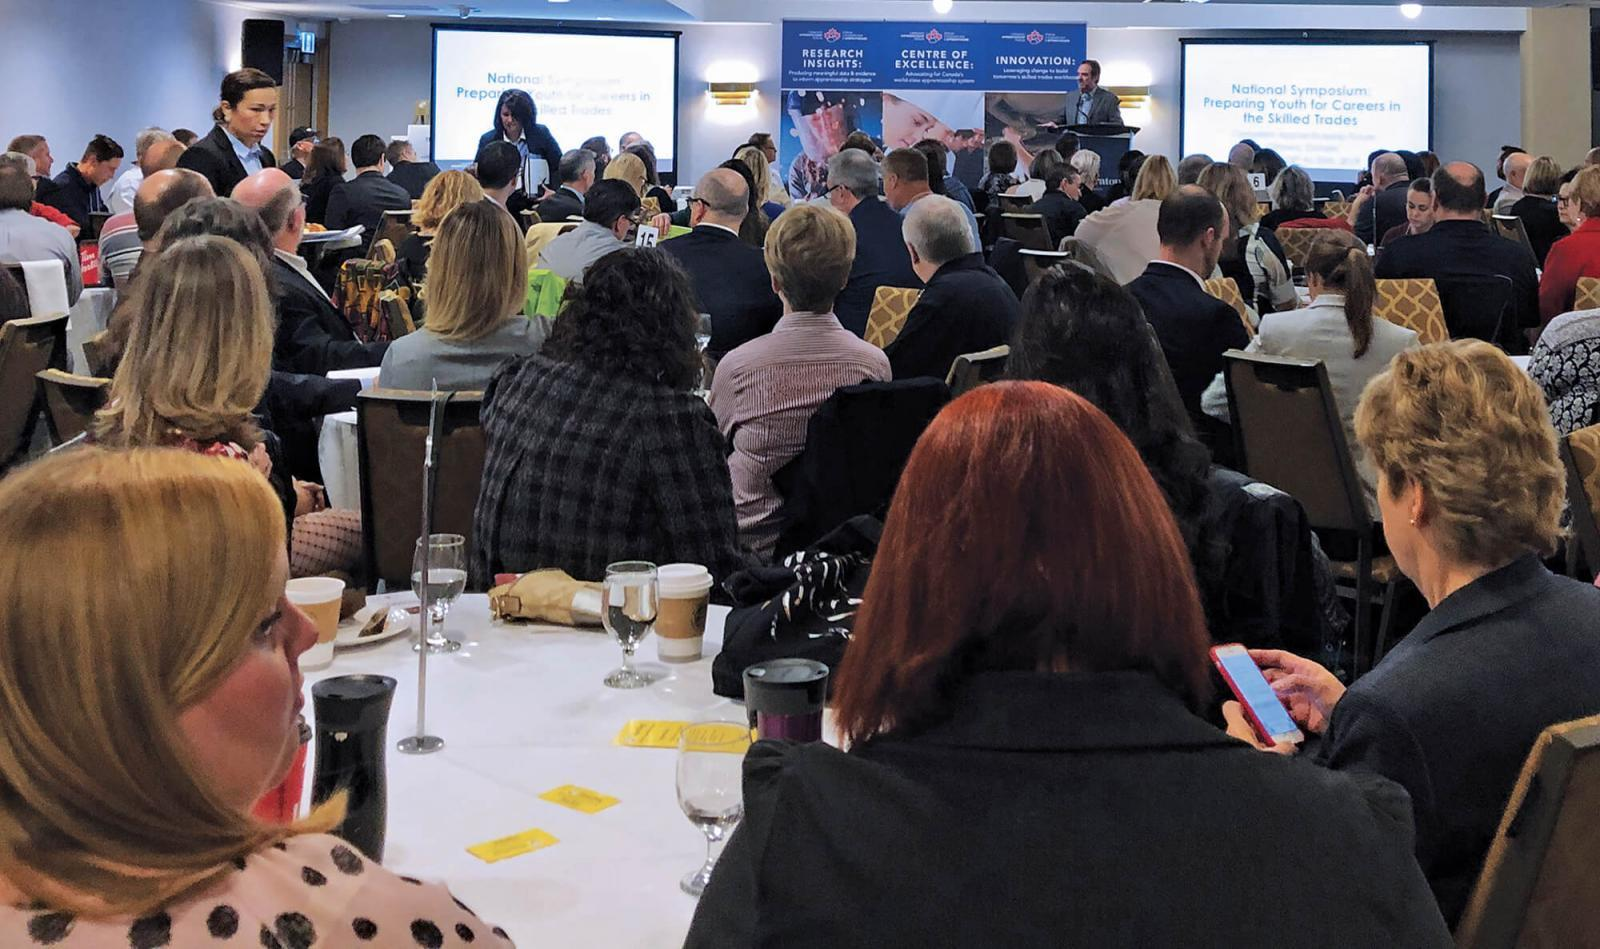 The two-day Canadian Apprenticeship Forum held in Ottawa, Ont., addressed key concerns of apprenticeship programs and careers in the Skilled Trades.